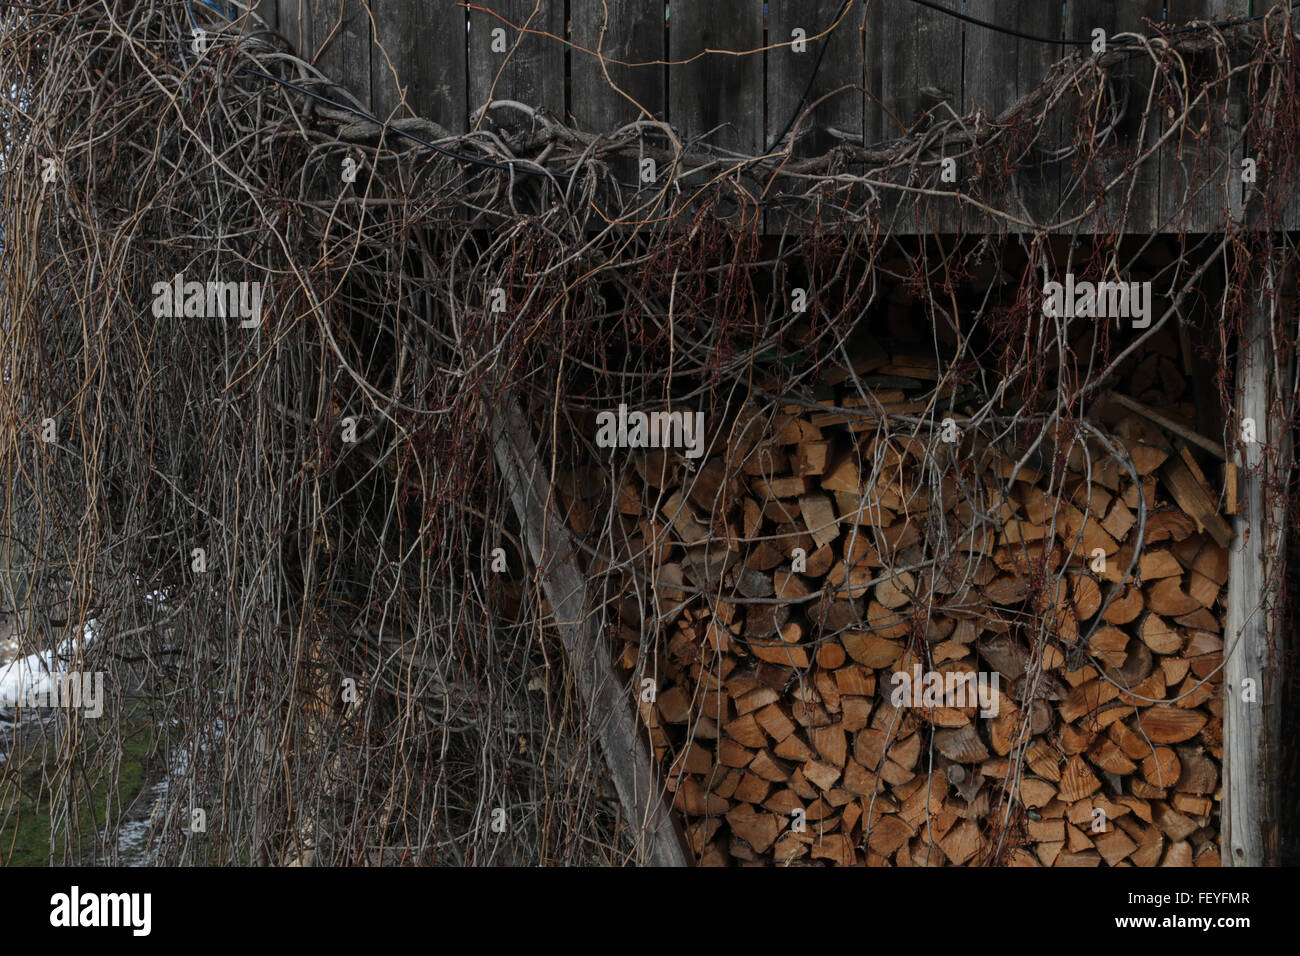 Stack Of Logs Surrounded By Dead Plants - Stock Image